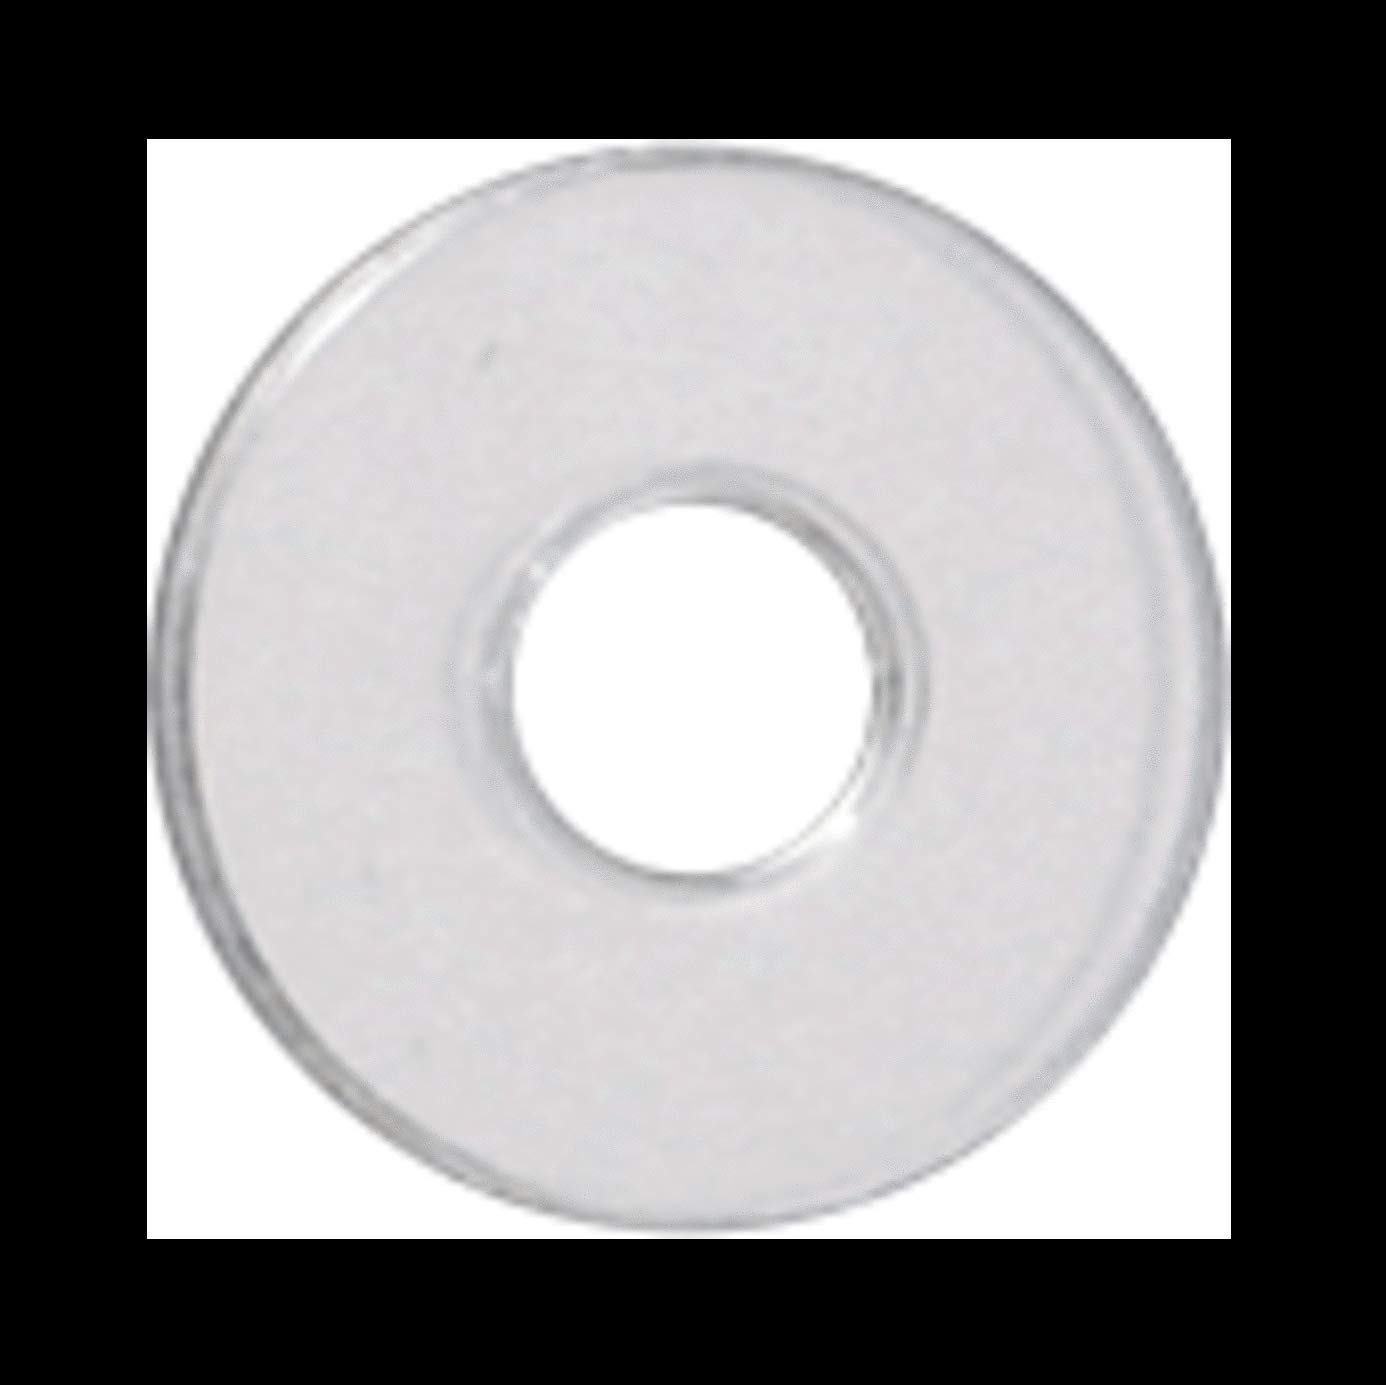 Crl 34 Clear Vinyl Replacement Washer For 34 Standoff Cap